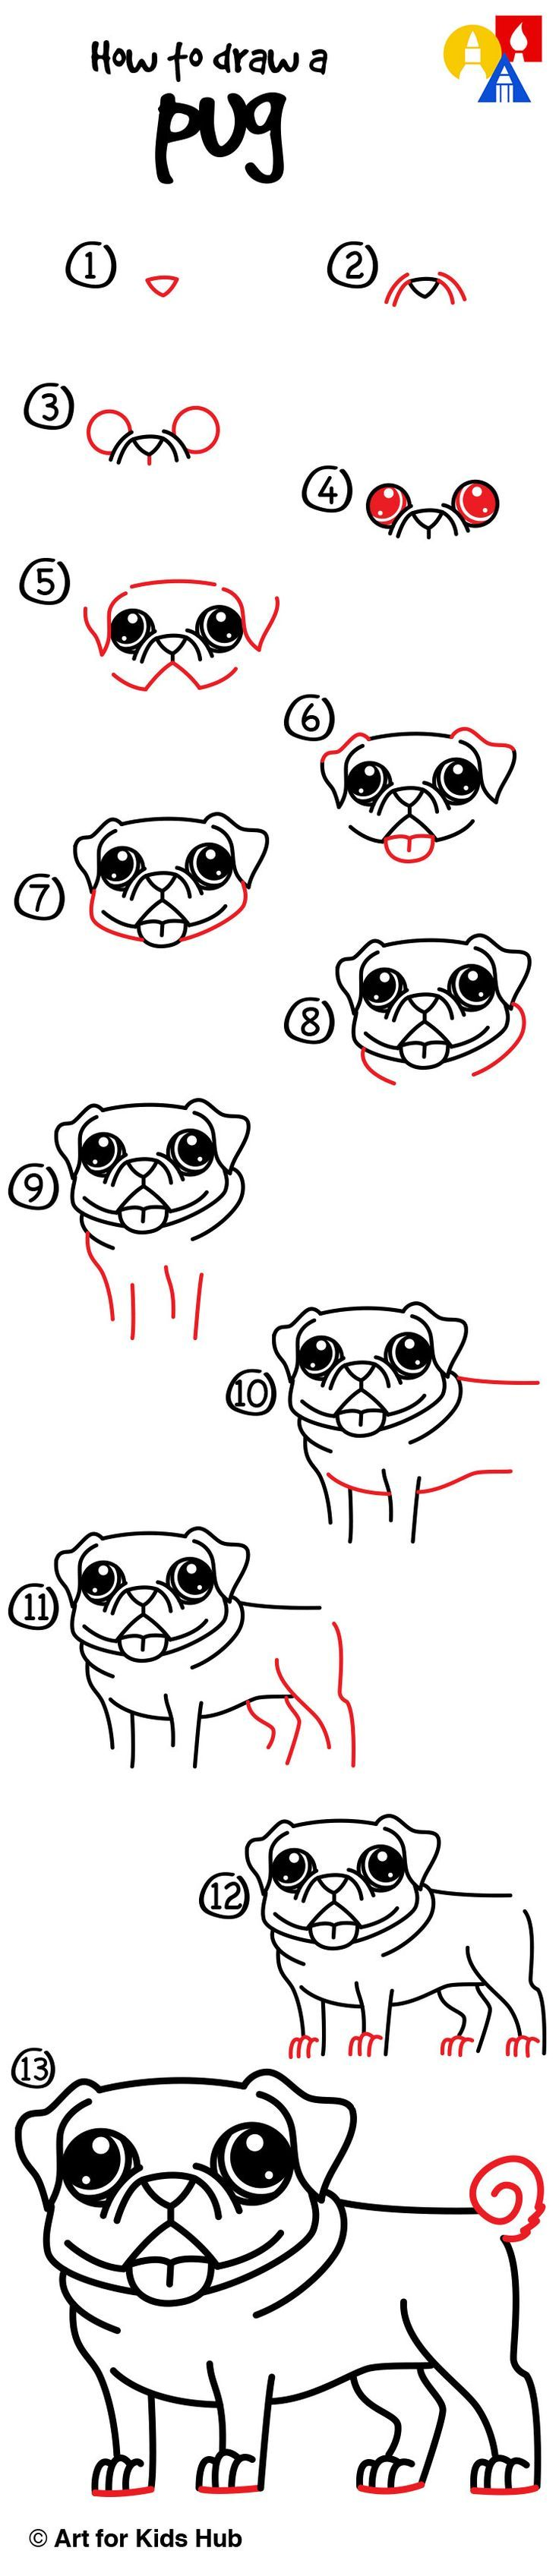 How to draw a pug!: